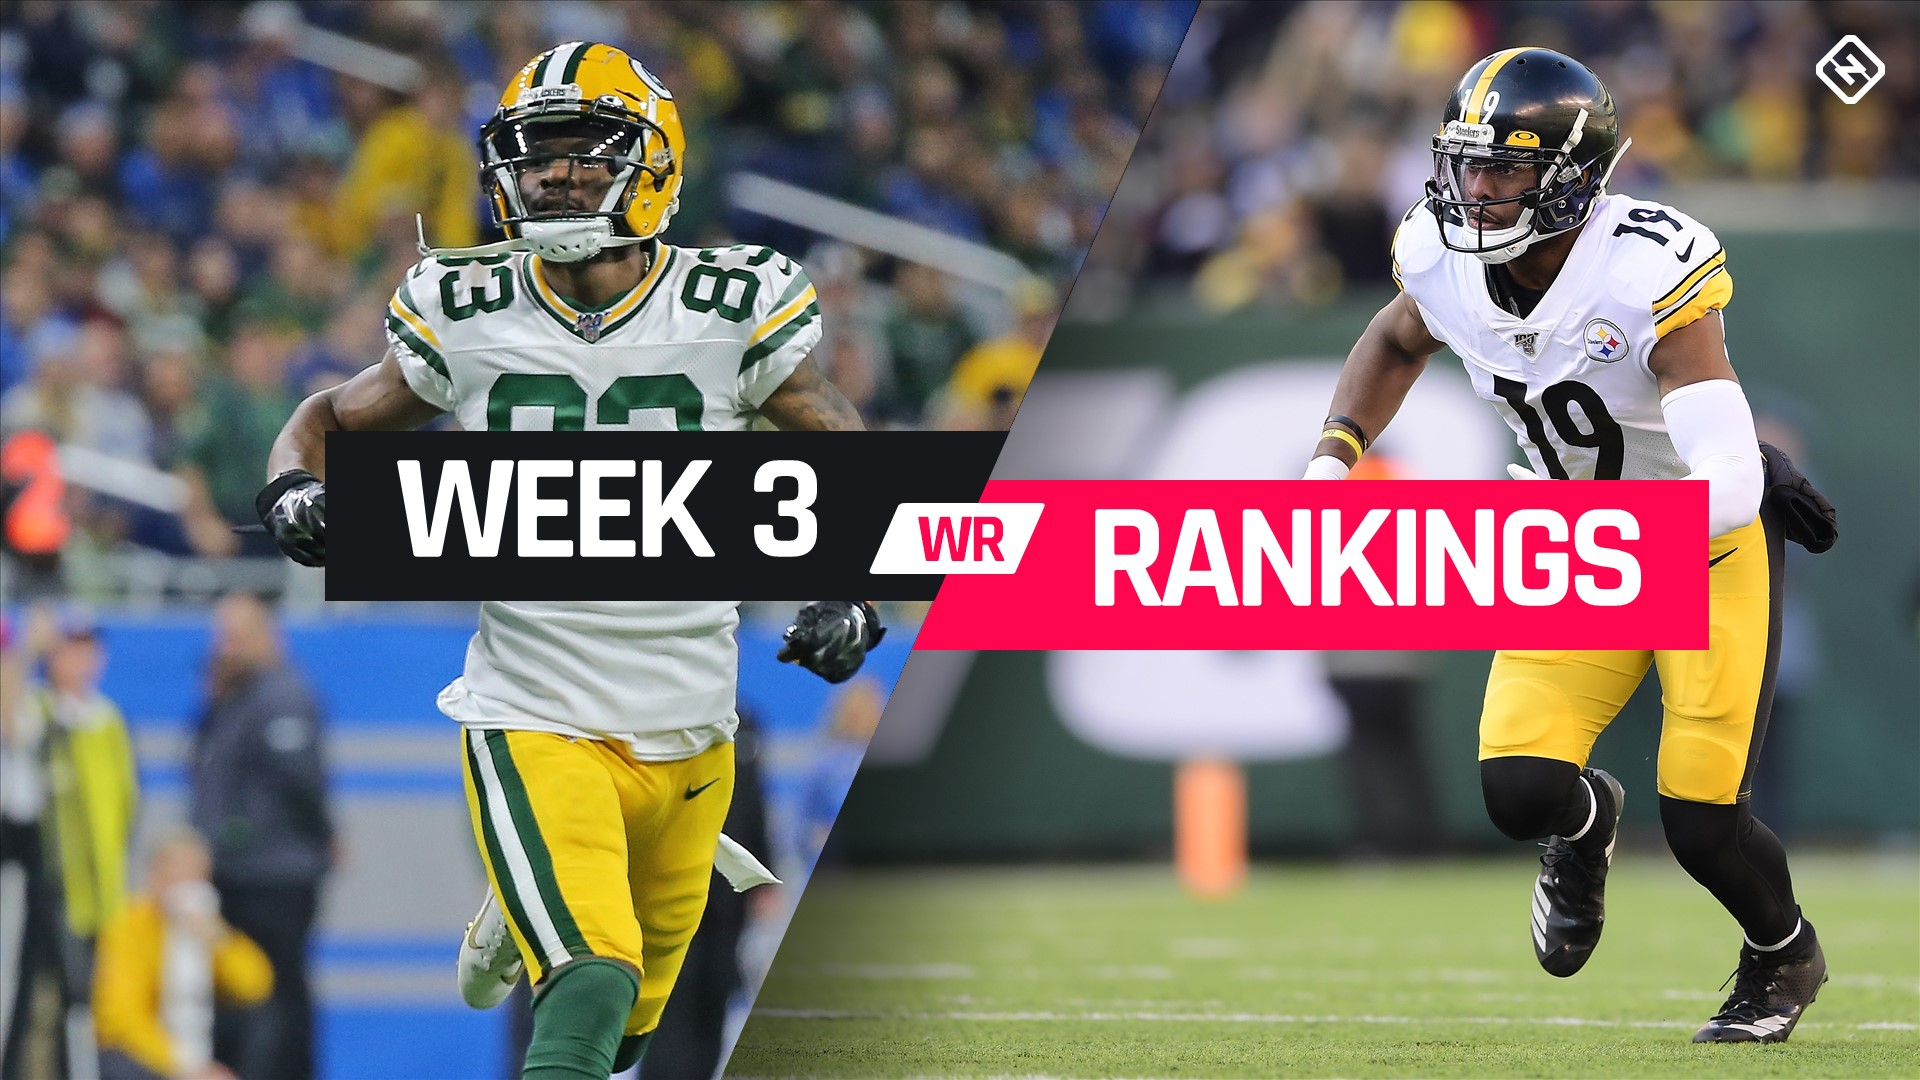 Week 3 Fantasy WR Rankings: Must-starts, sleepers, potential busts at wide receiver...